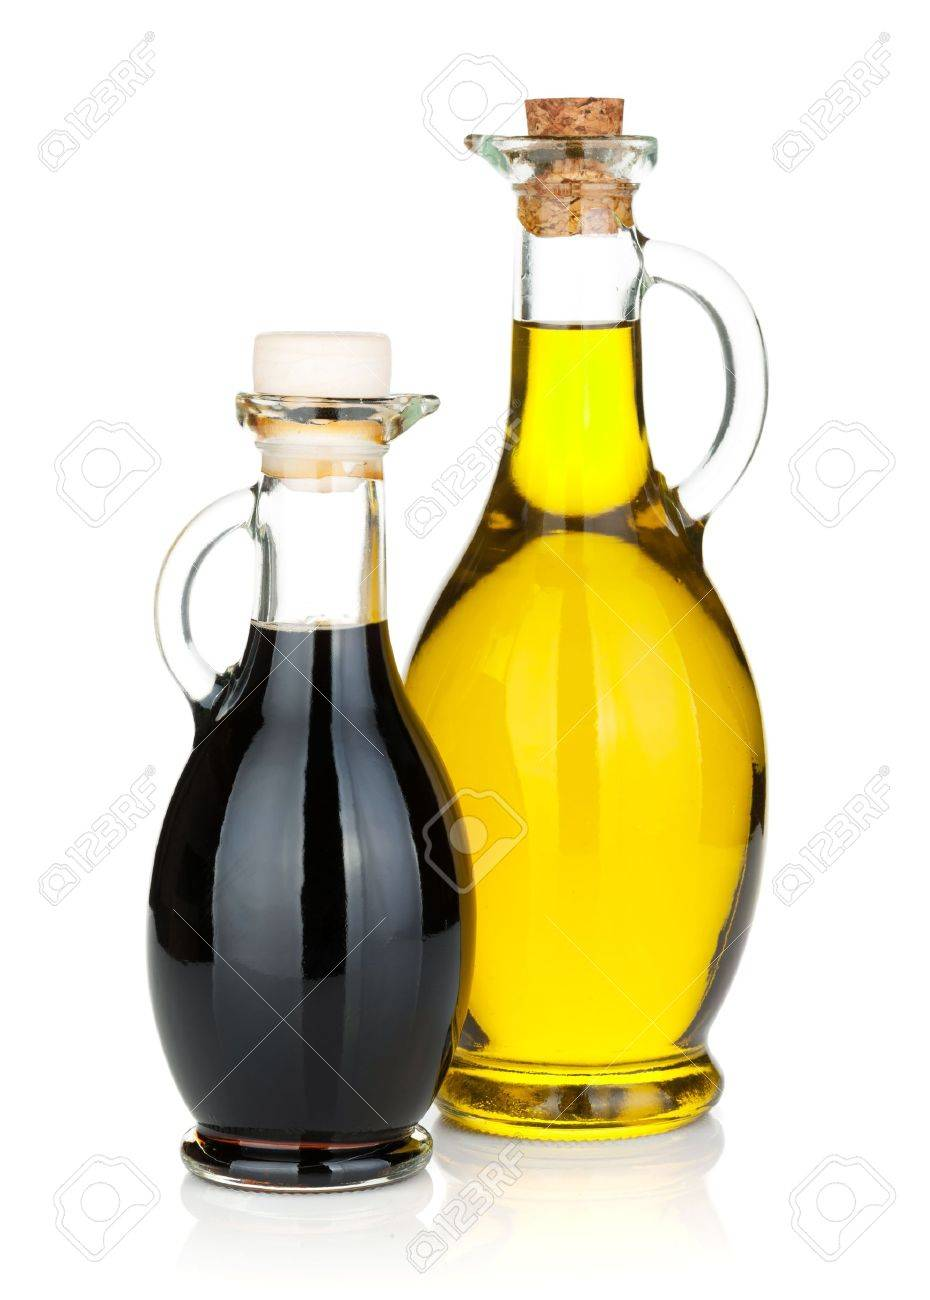 Enamour Vinegar Bottles Debenhams Vinegar Bottles Australia Oil Vinegar Bottles Isolated On Background Stock Photo Olive Oil Vinegar Bottles Isolated On Background Stock Oil Olive Oil houzz-02 Oil And Vinegar Bottles